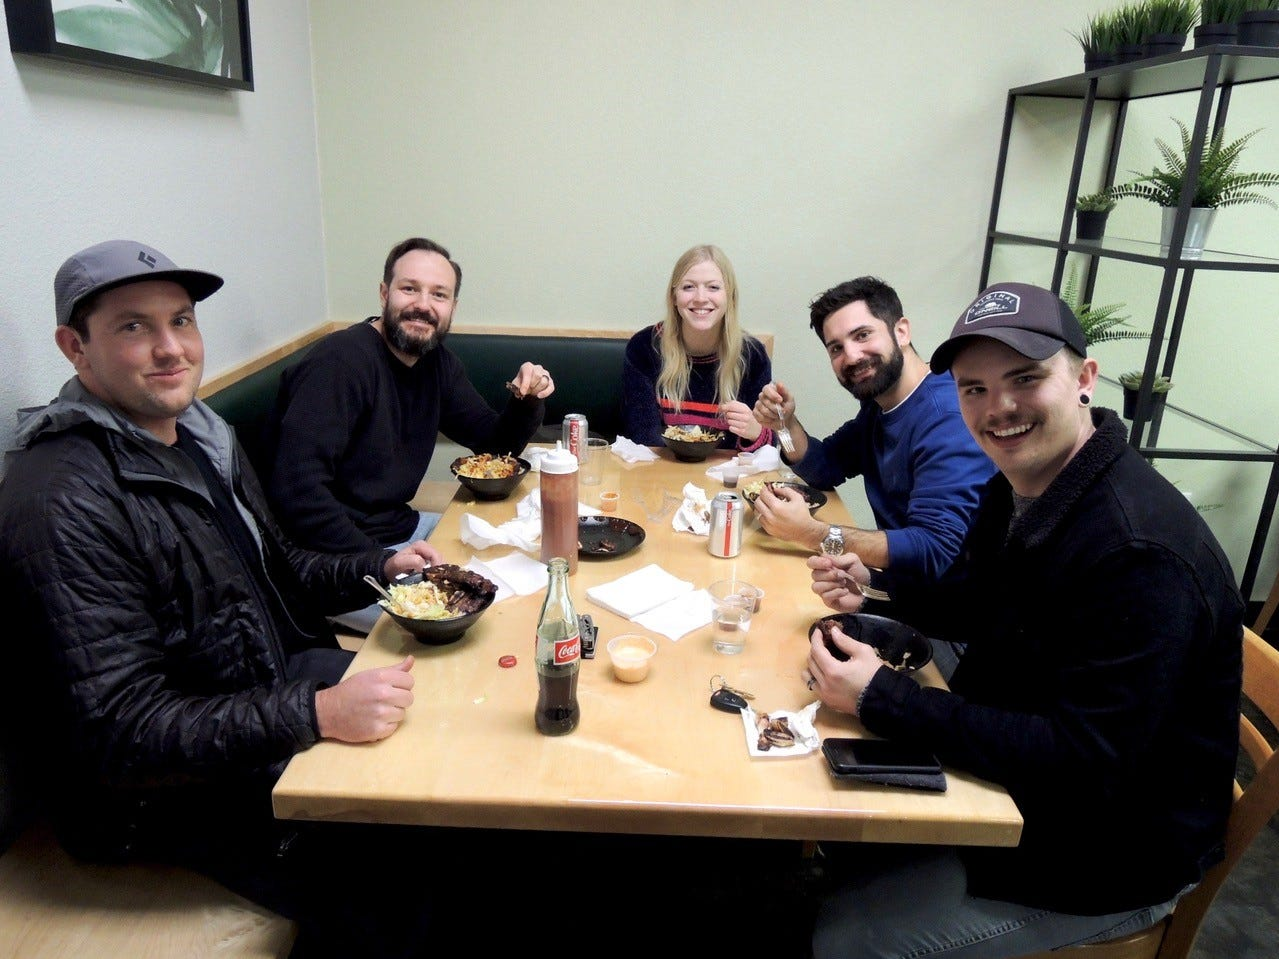 Dining at the new Fresh Fire Grill location on Lake Boulevard are Chip Whitley, left, Jordan Bogart, Rachel Faulkner, Josh Hesami and Dustin Schultz.